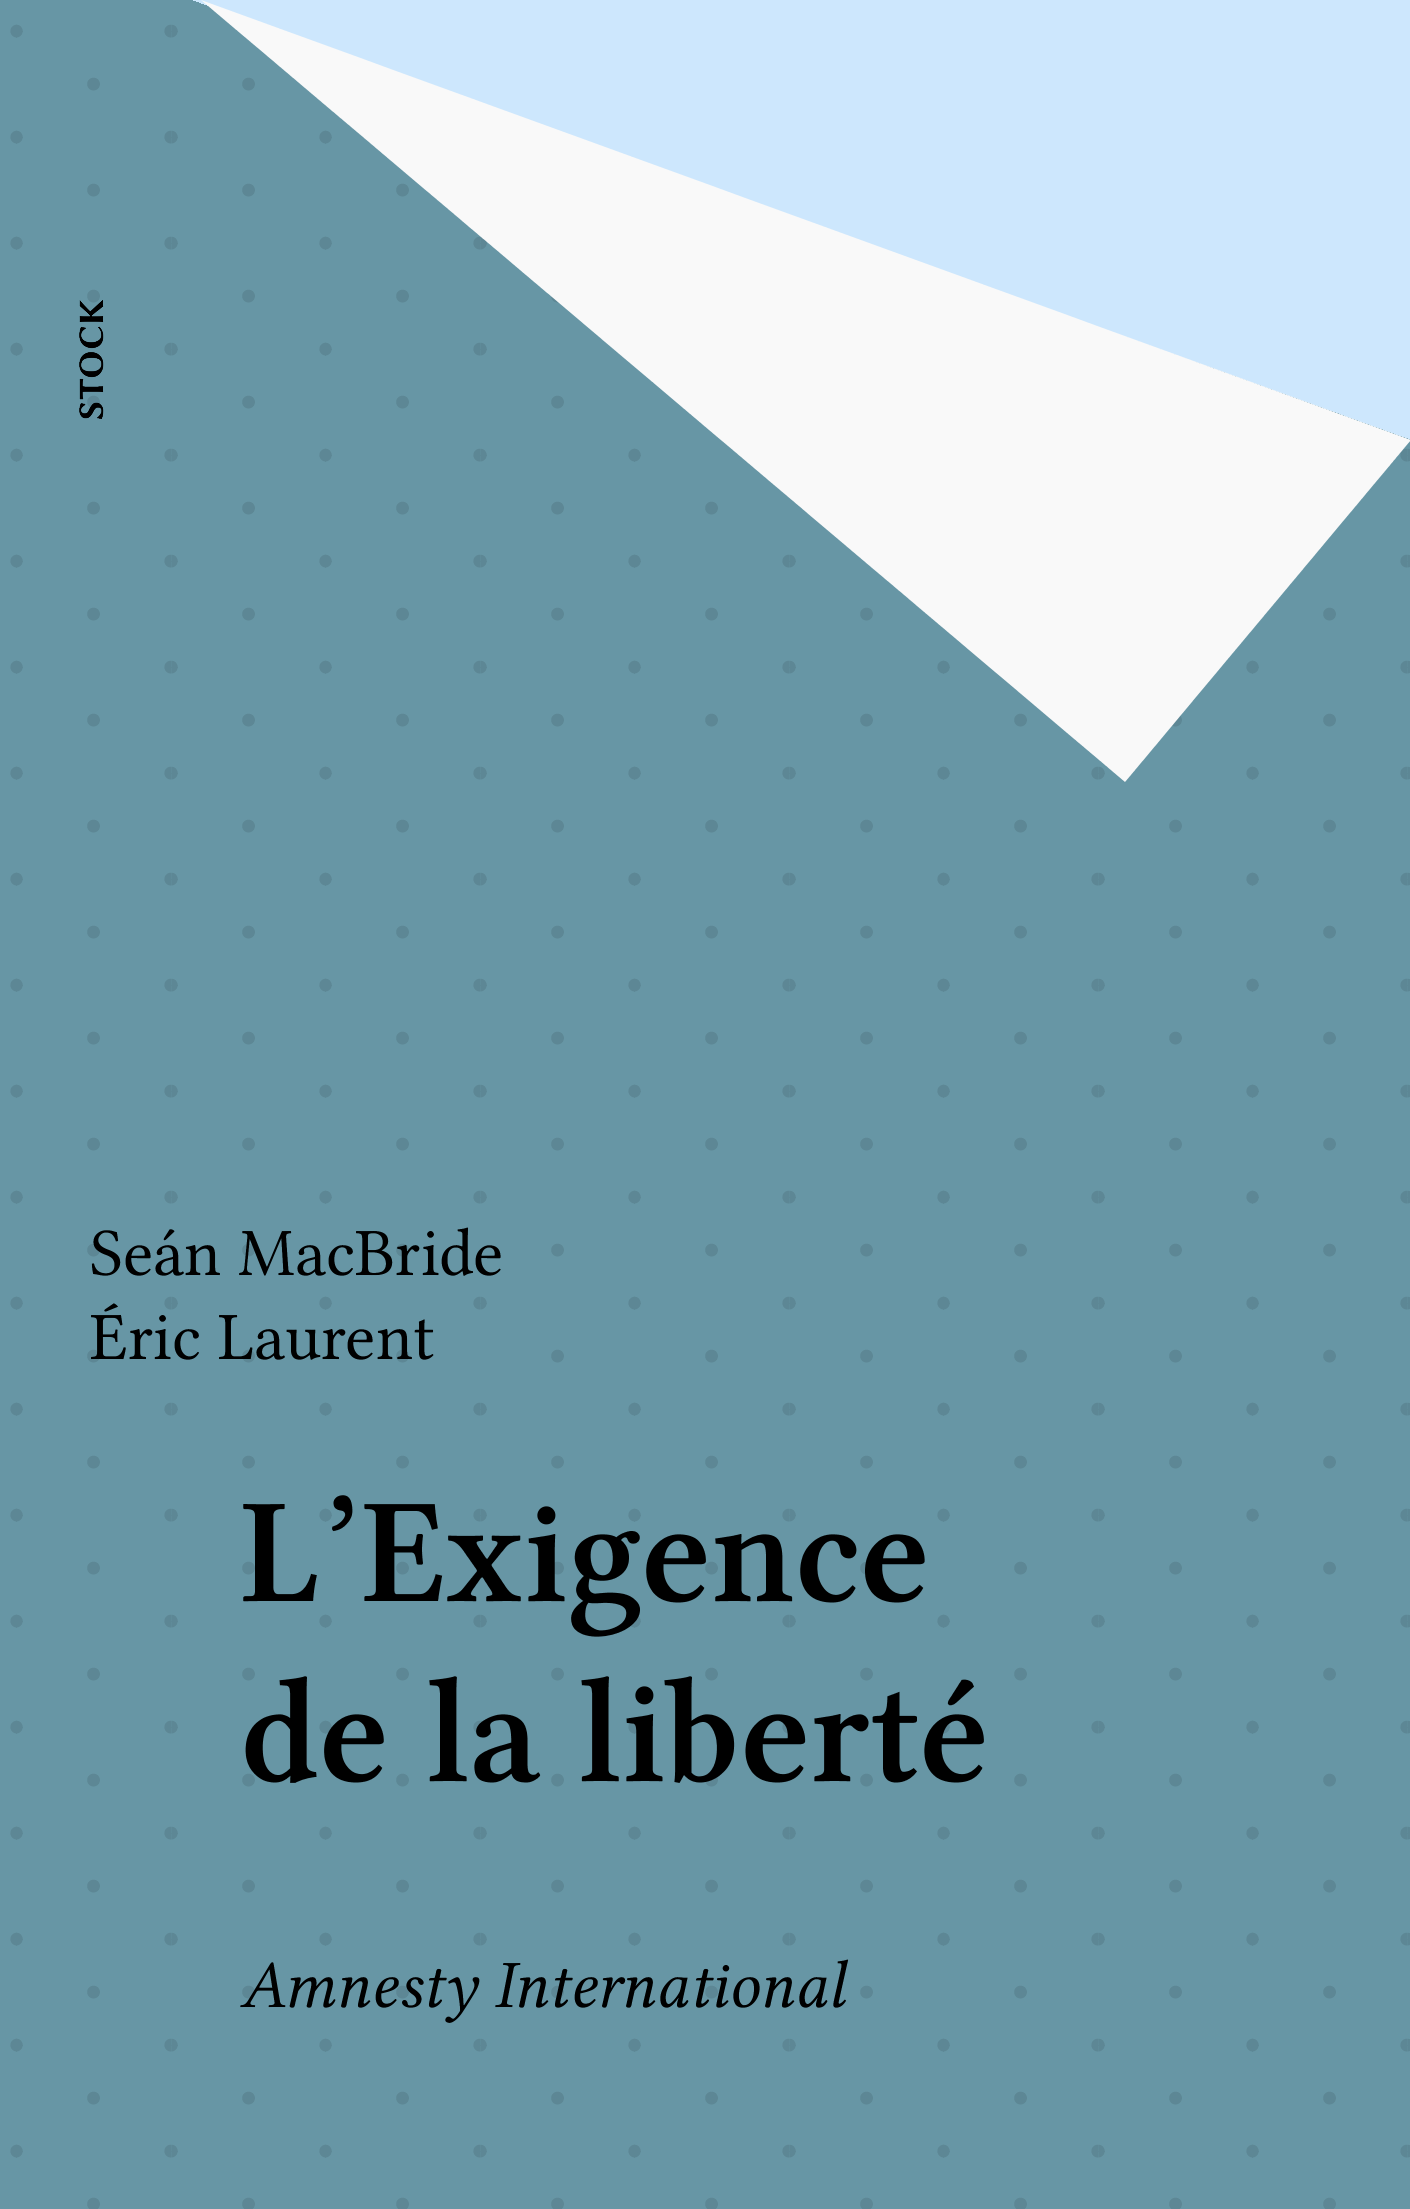 L'Exigence de la liberté, AMNESTY INTERNATIONAL